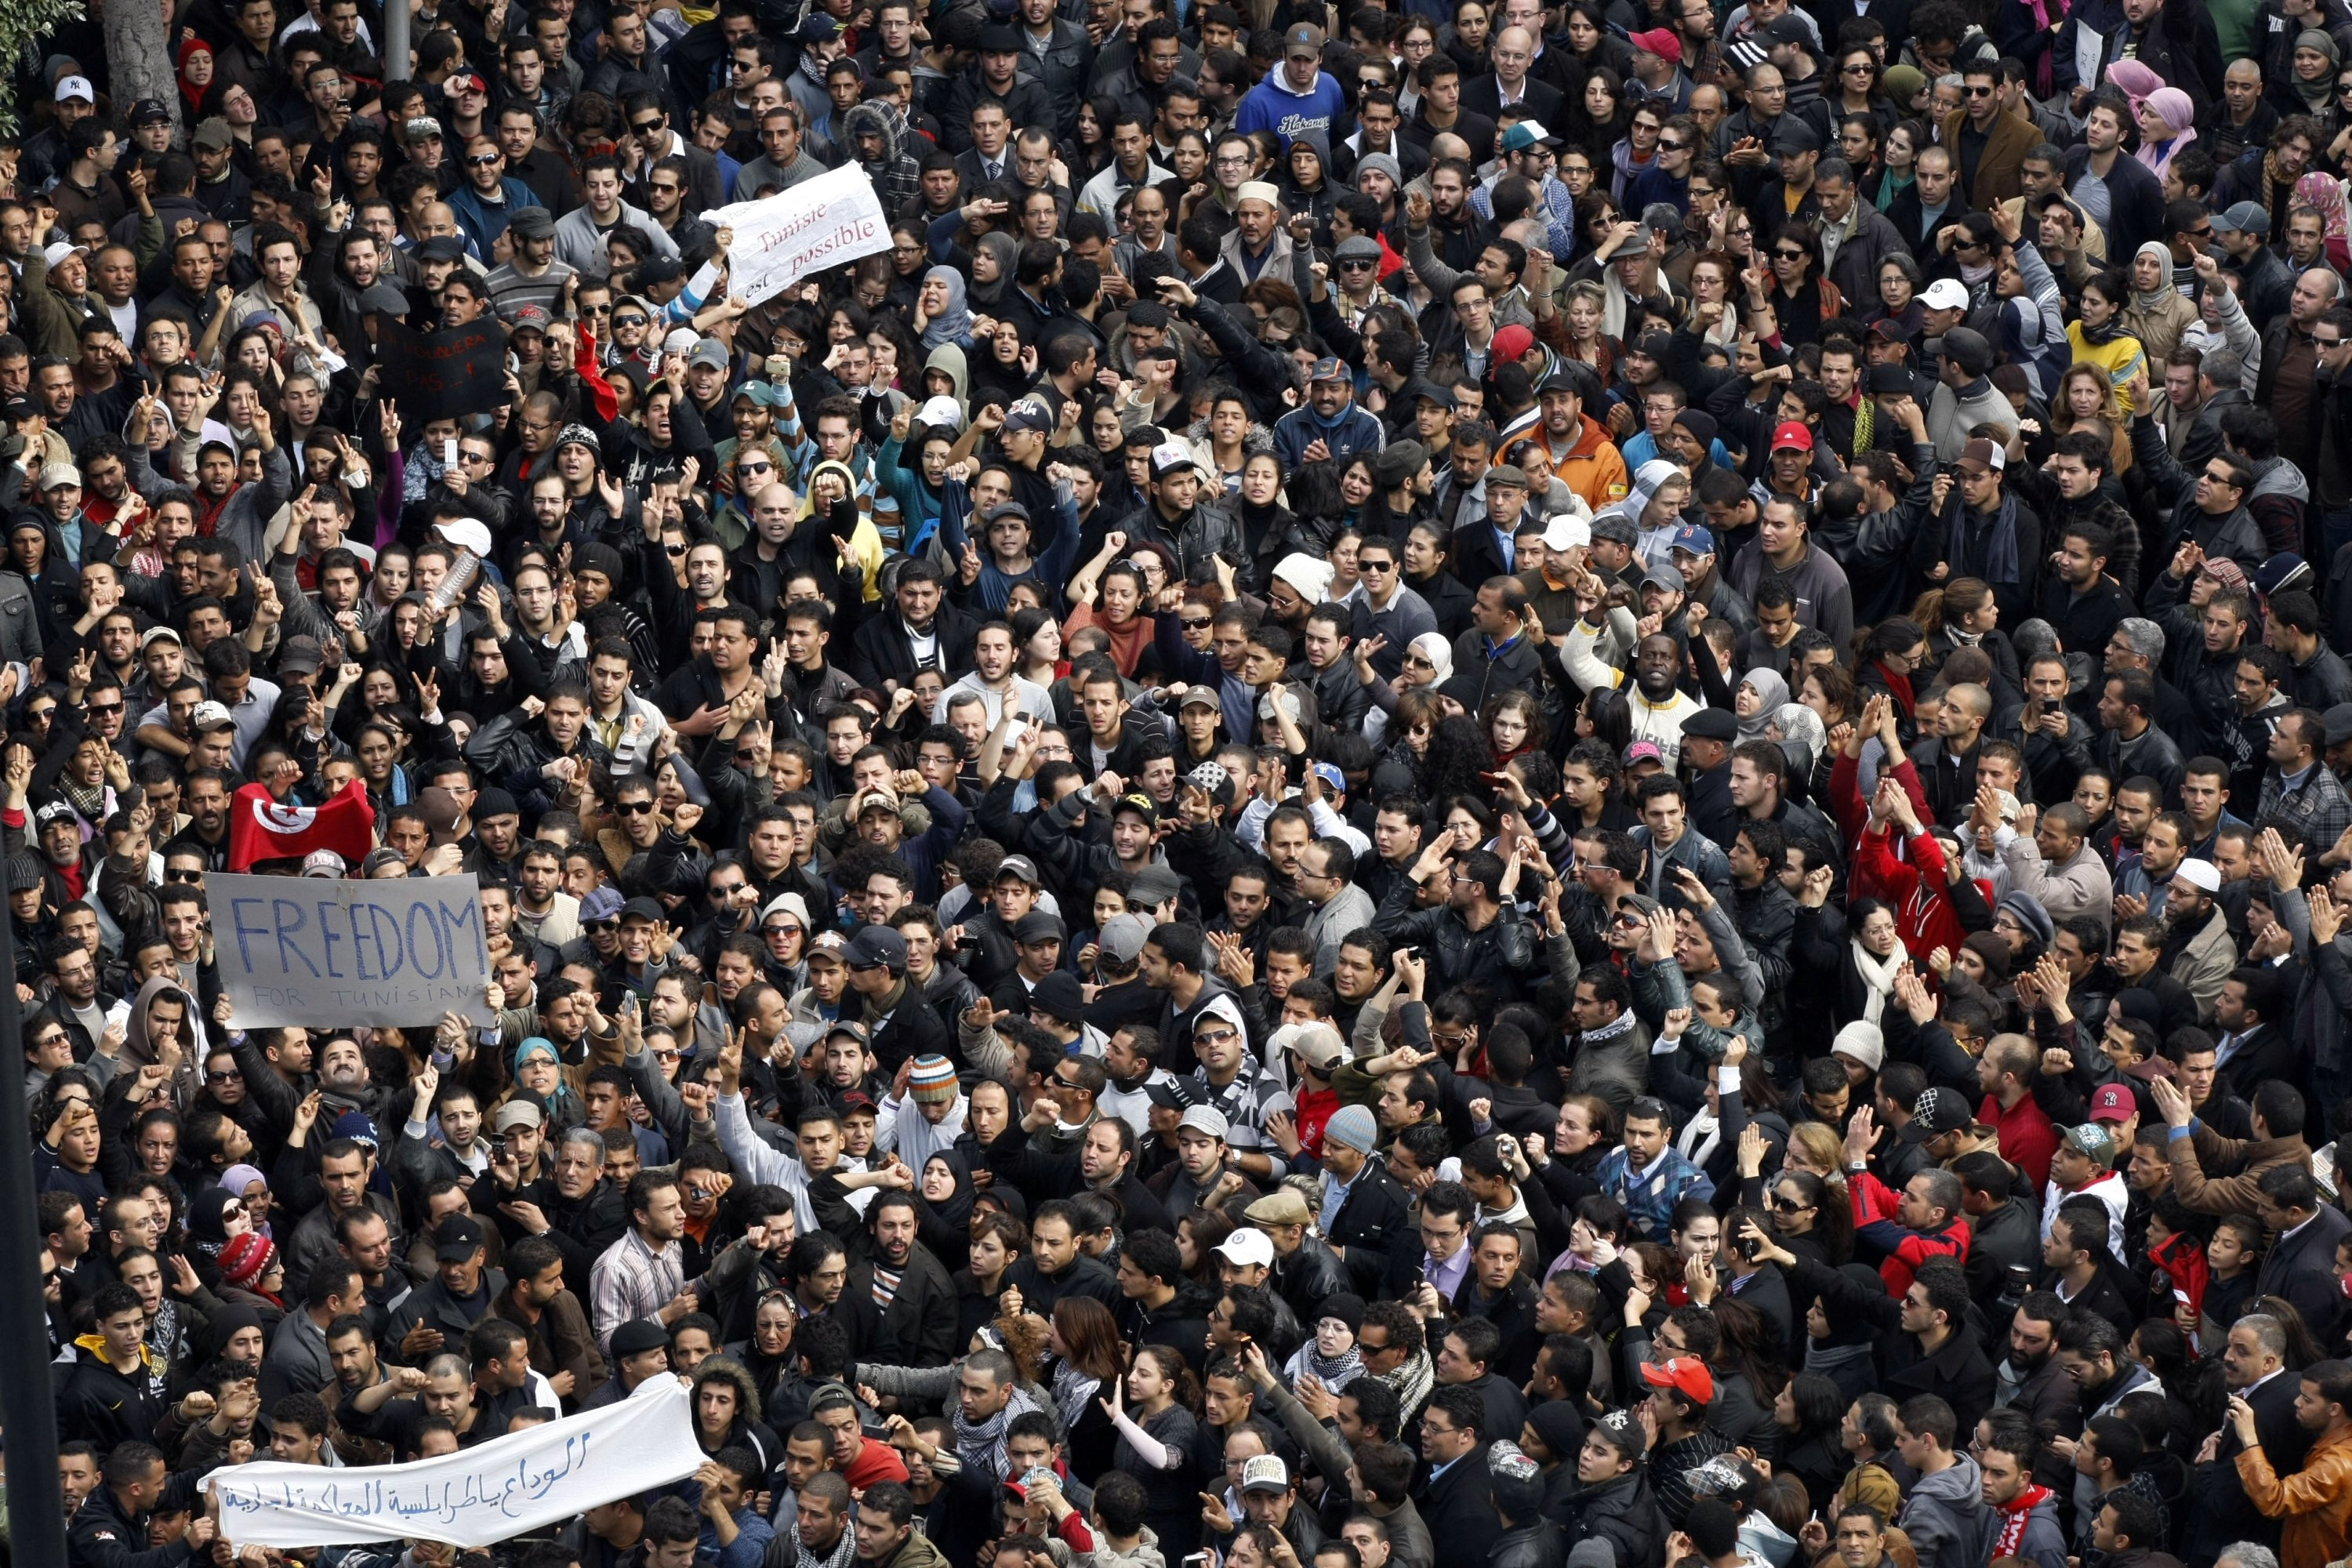 Protesters chant slogans against the government during a demonstration in Tunis, Tunisia, Jan. 14, 2011. (AP Photo)